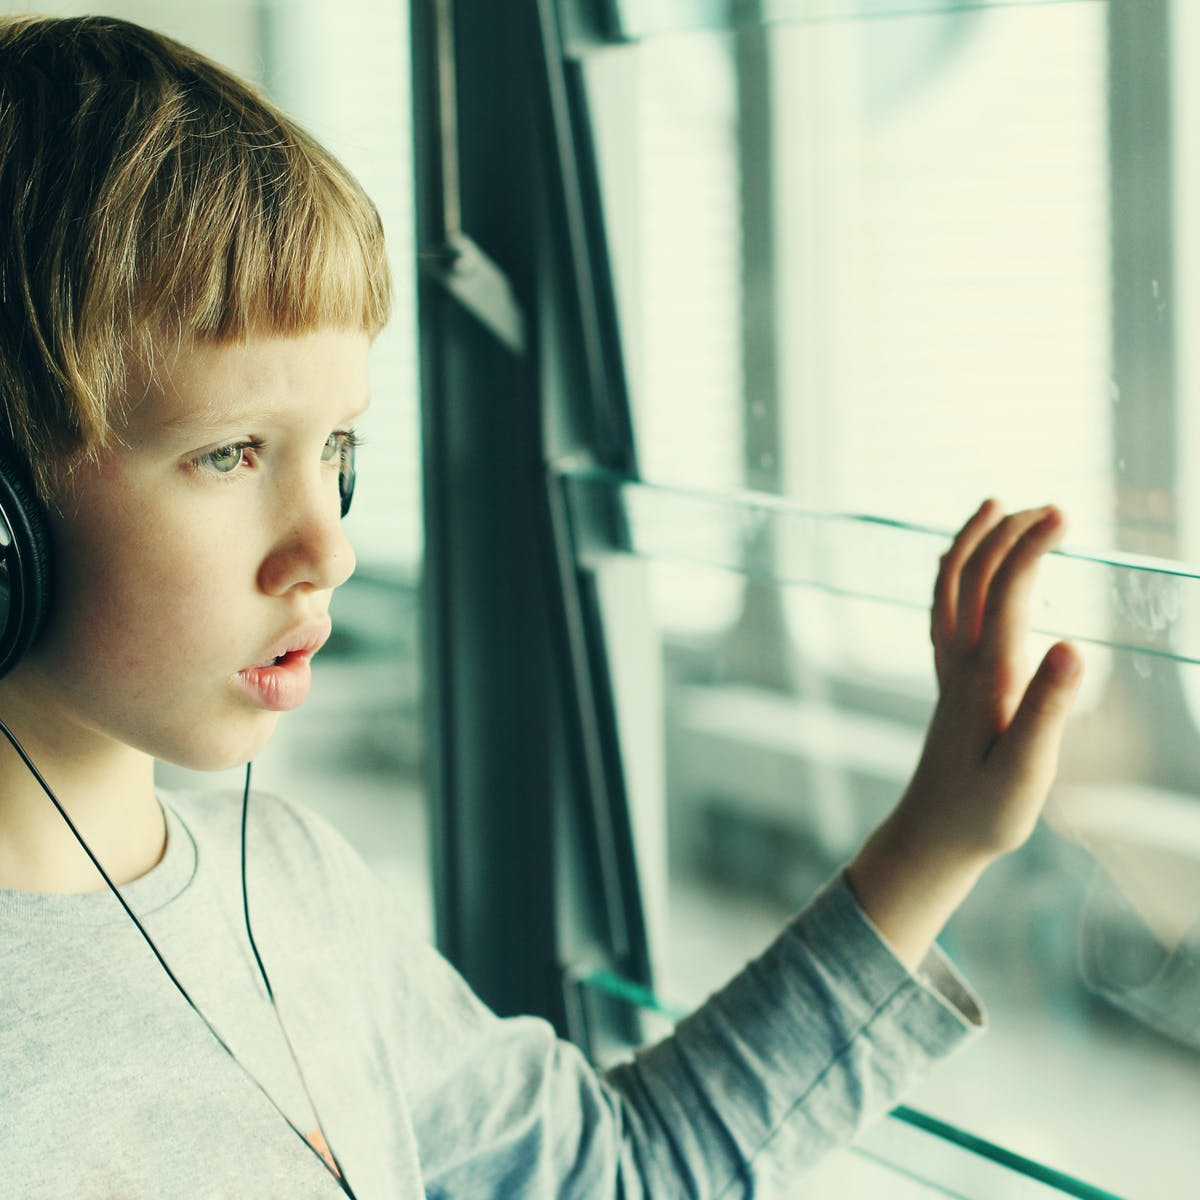 Everything Makes Children Autistic >> We Need To Stop Perpetuating The Myth That Children Grow Out